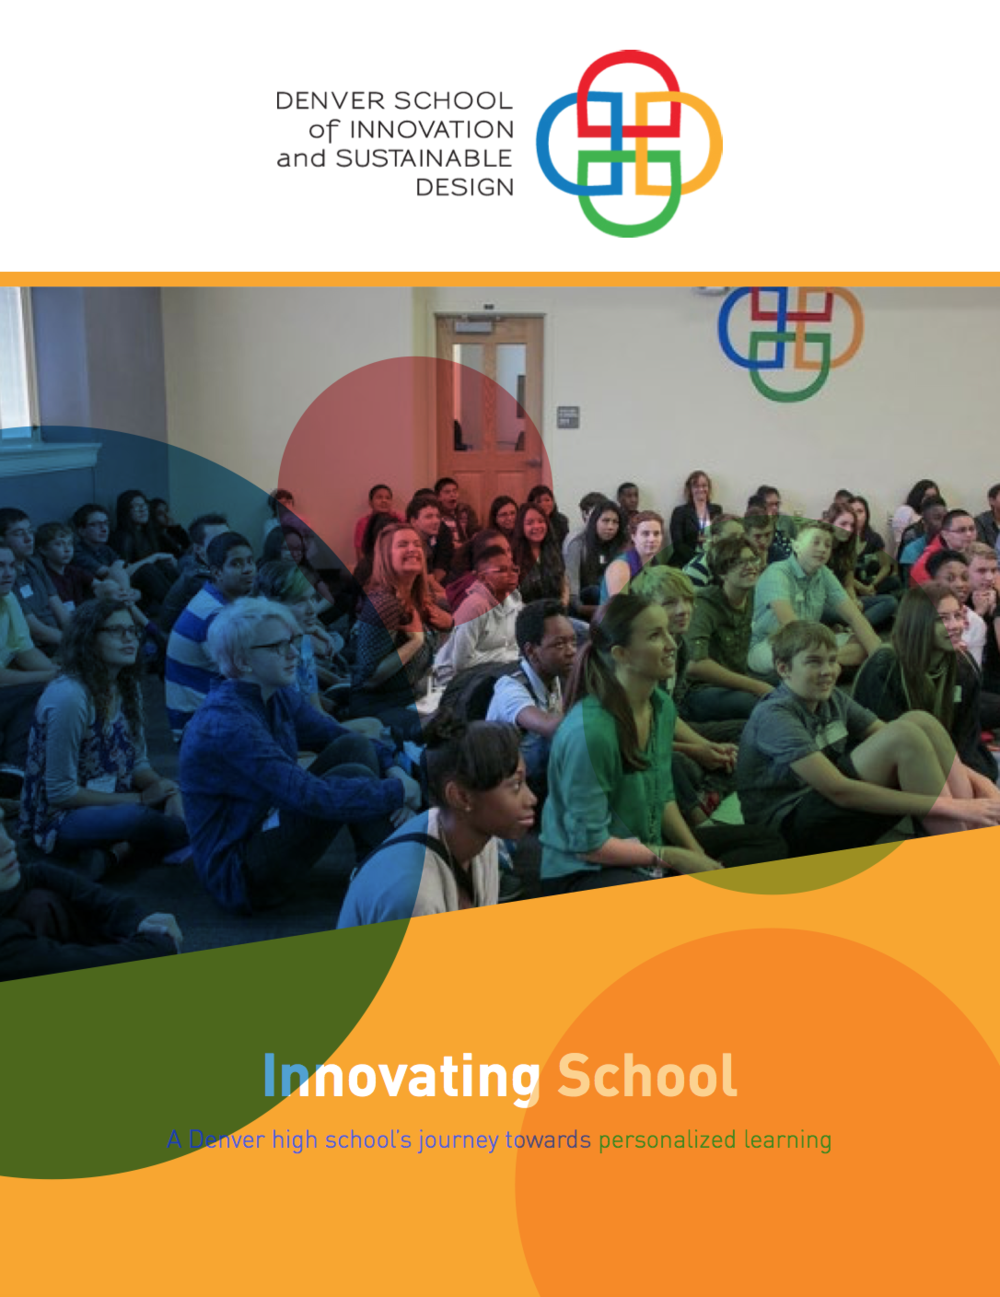 Innovating School: A Denver High School's Journey Towards Personalized Learning, April 2016